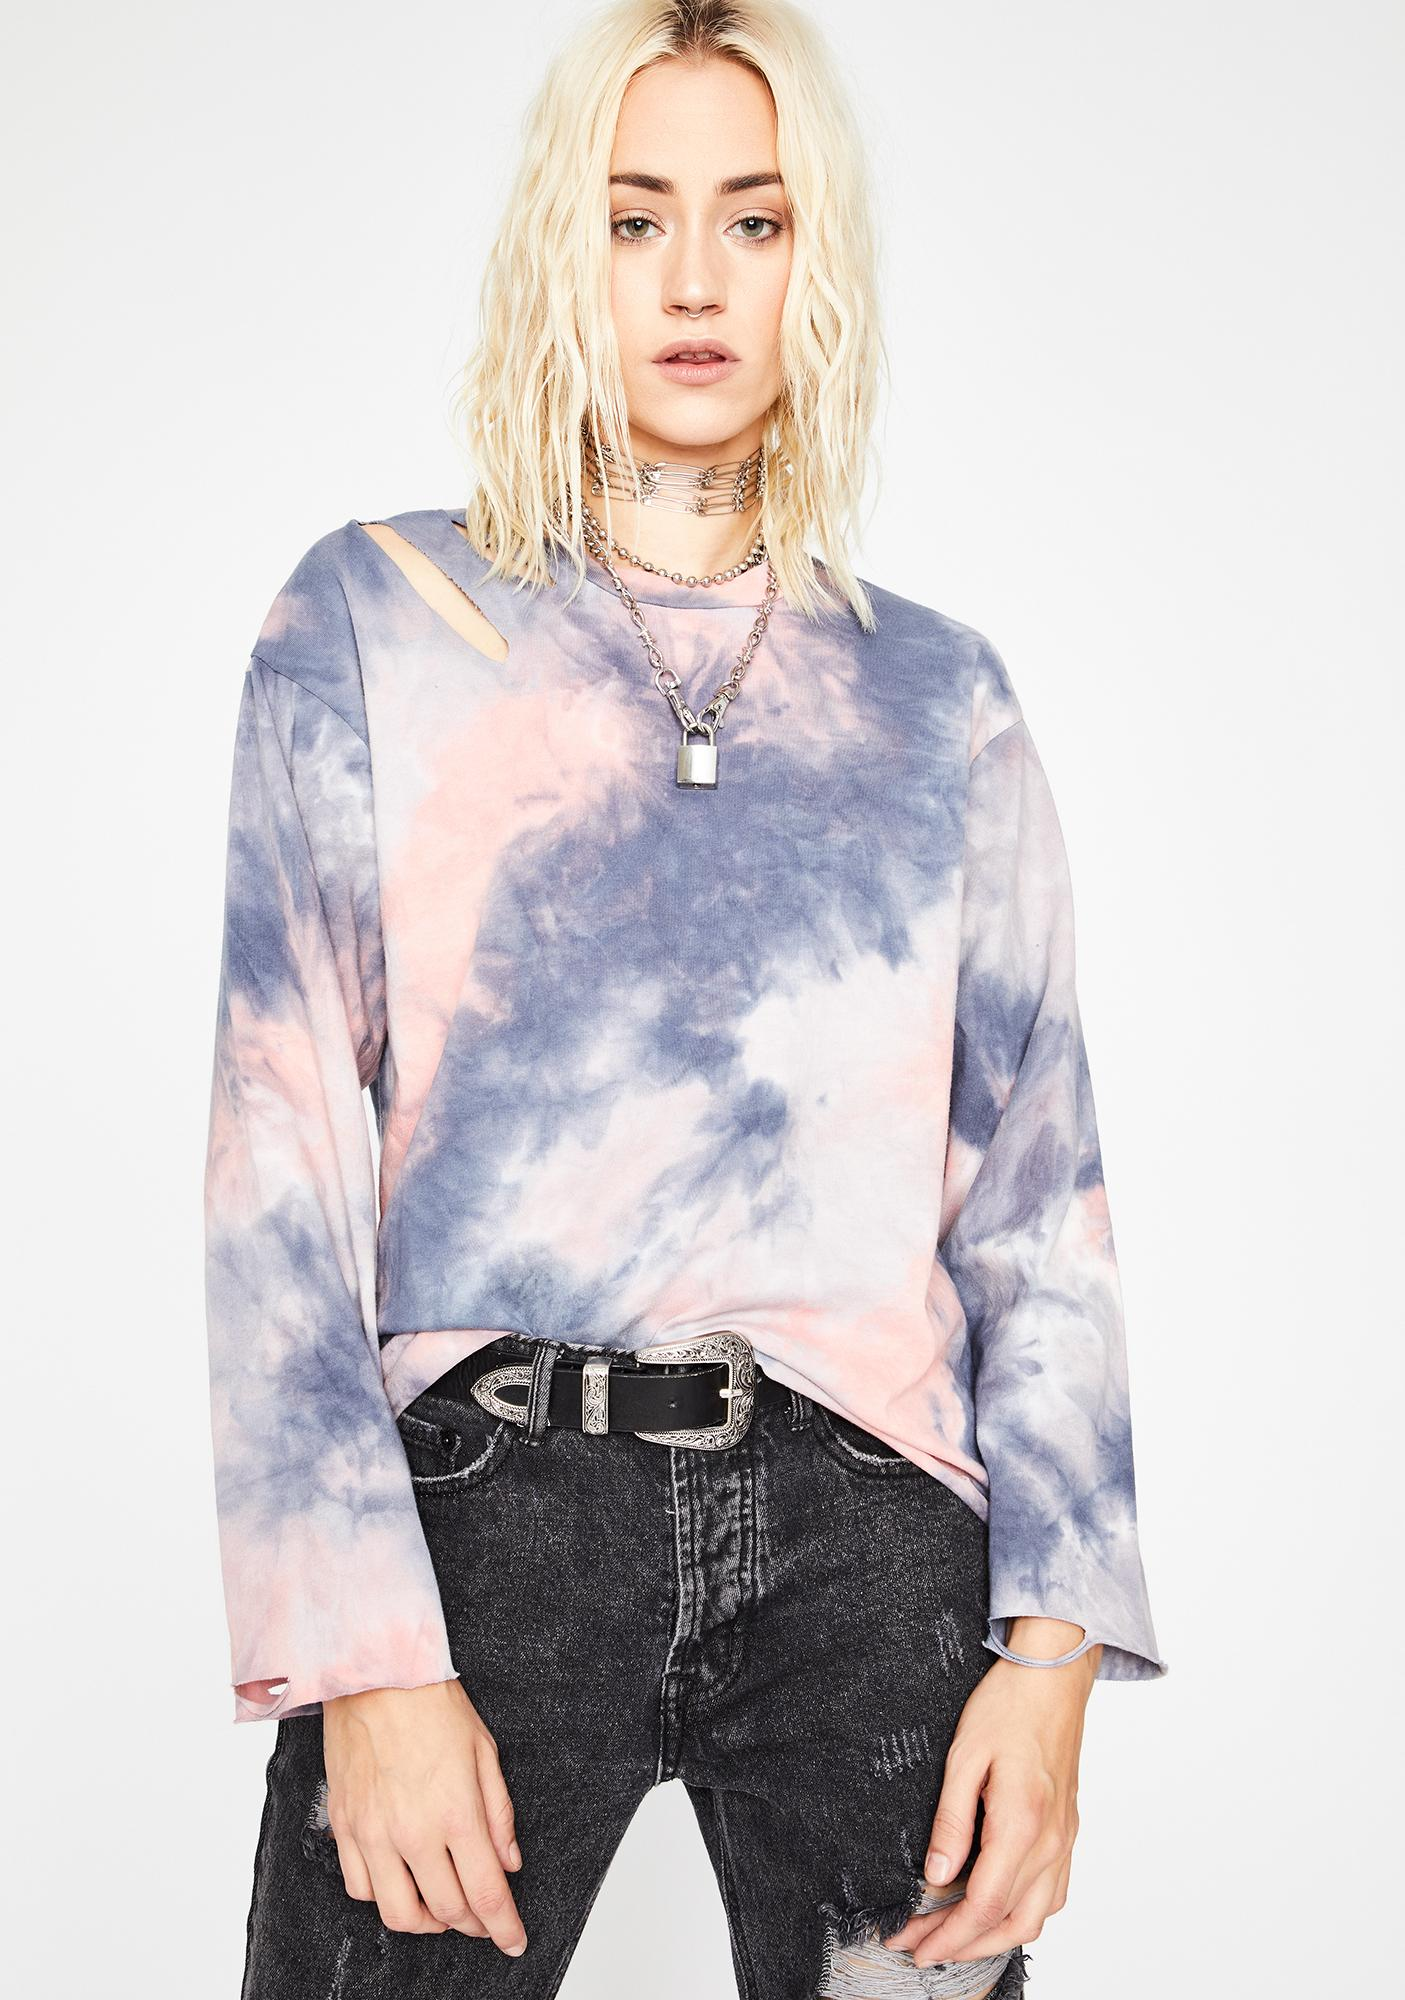 Sunset Cotton Candy Dreams Tie Dye Tee